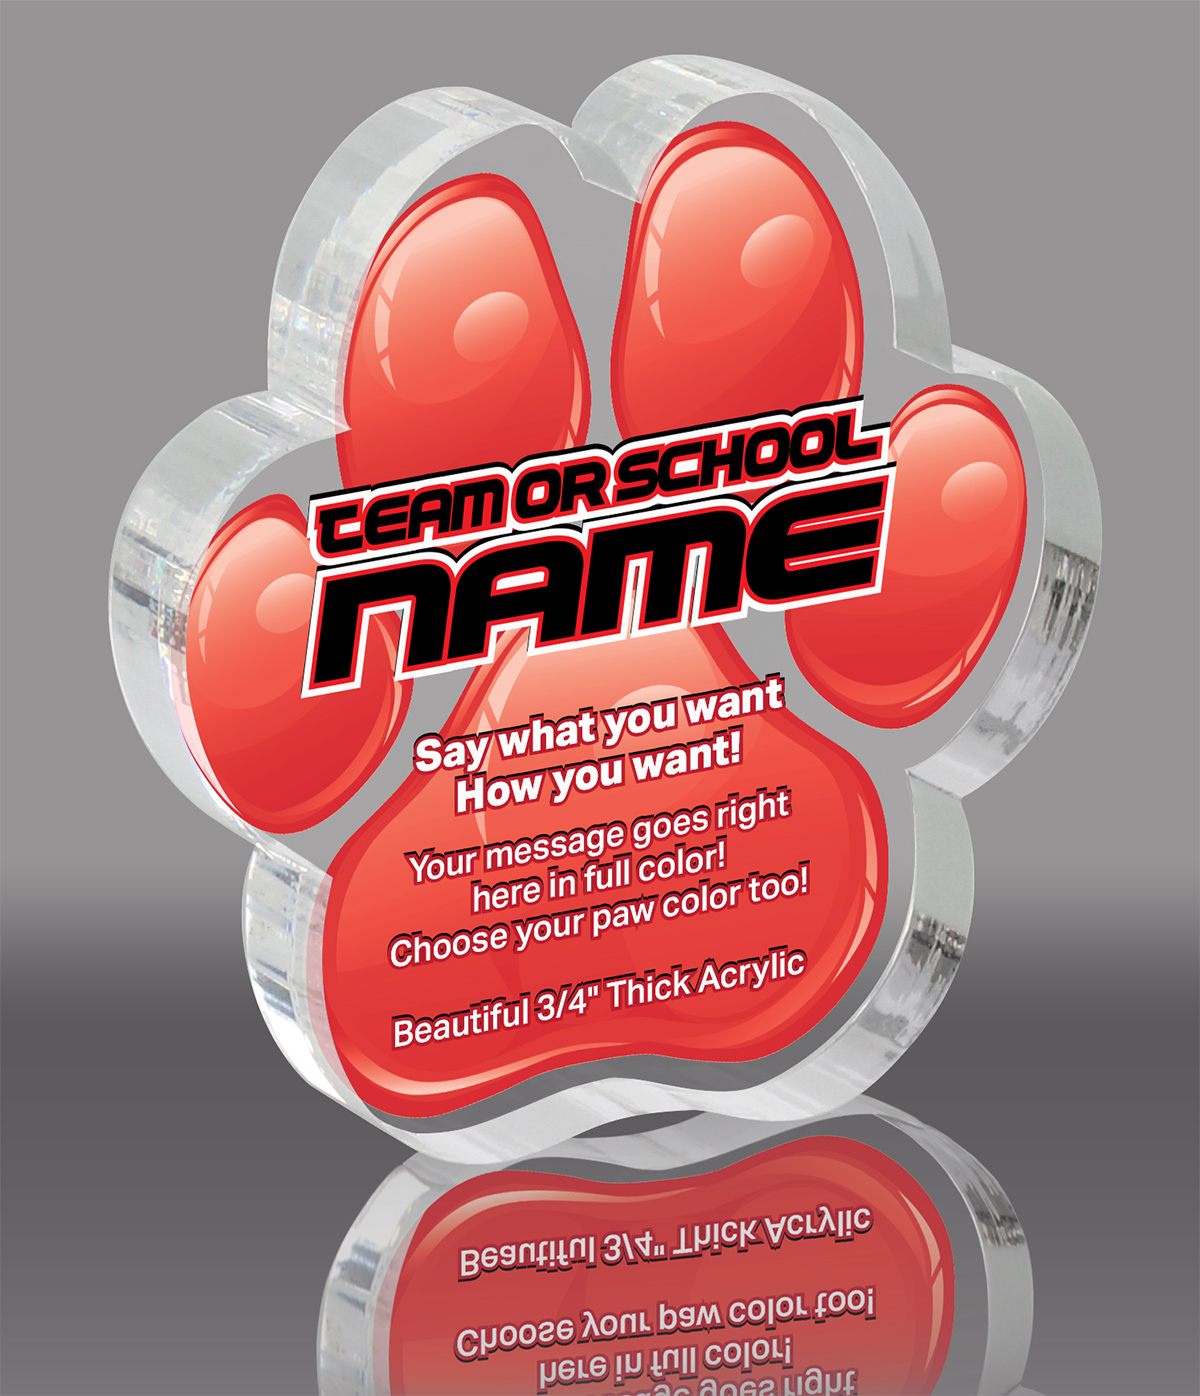 Red Acrylic ColorPaw- 4 inch